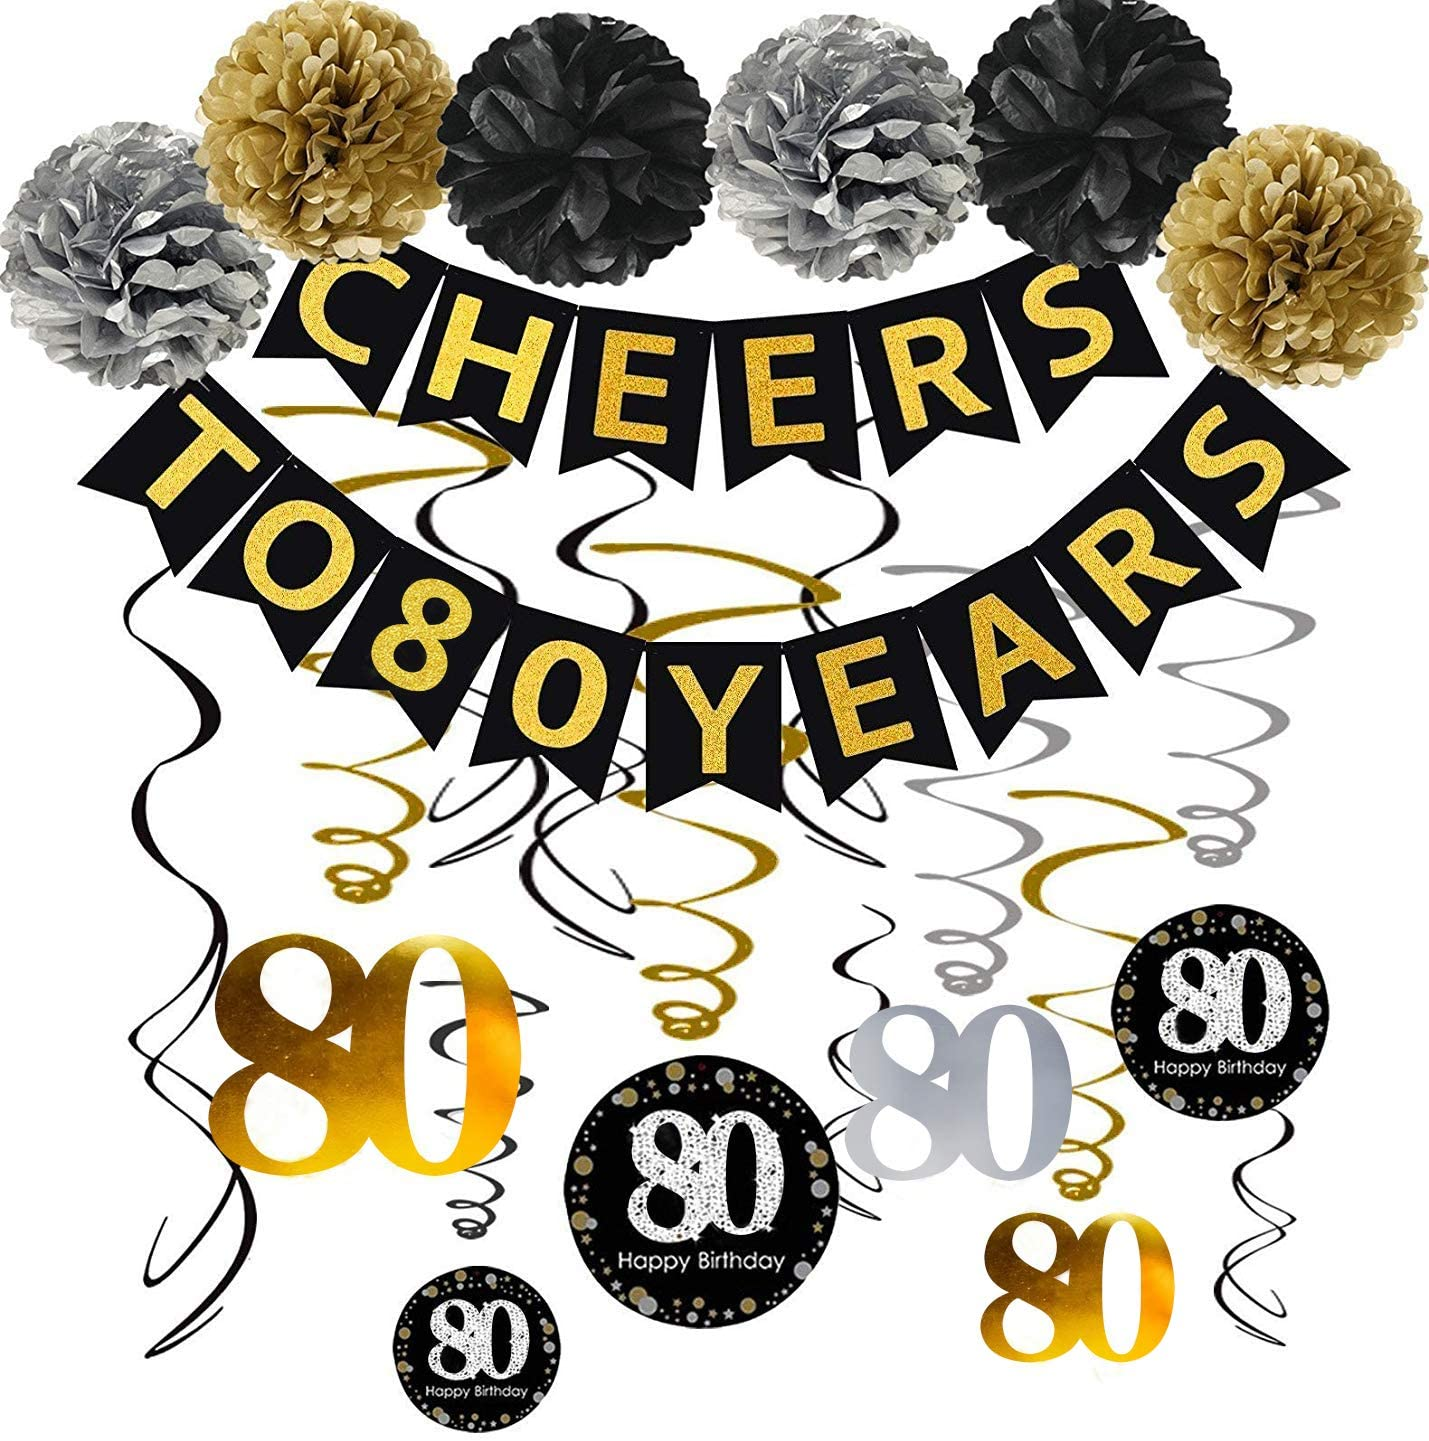 80th Birthday Party Decorations Kit - Gold Glittery Cheers to 80 Years Banner,Poms,12Pcs Sparkling 80 Hanging Swirl for 80th Anniversary Decorations 80 Years Old Party Supplies